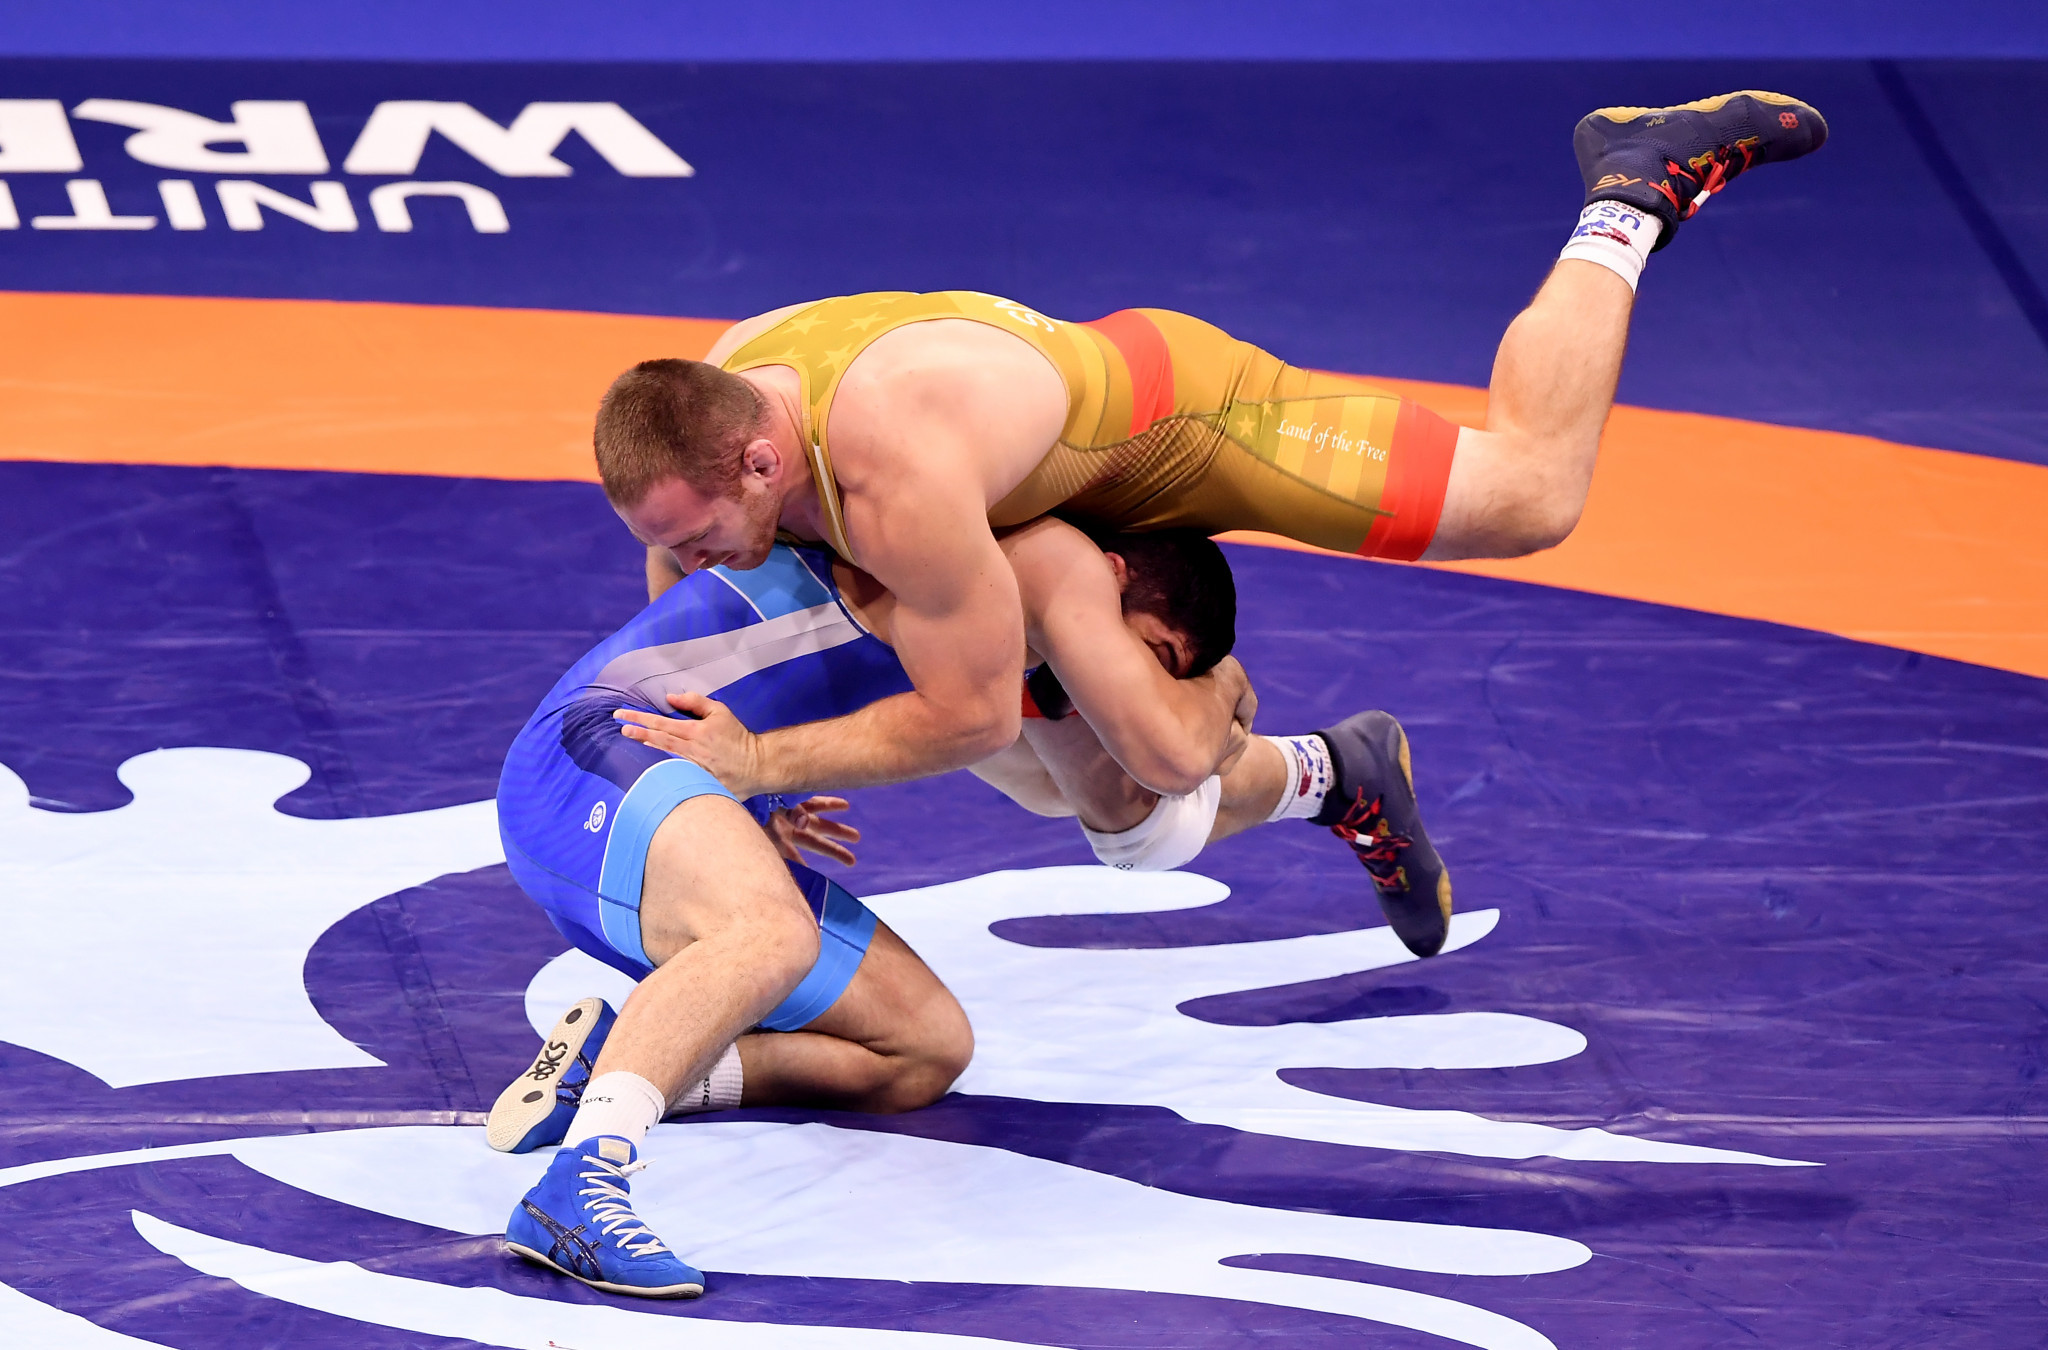 Four Olympic champions headline field for 2019 Pan American Wrestling Championships in Buenos Aires